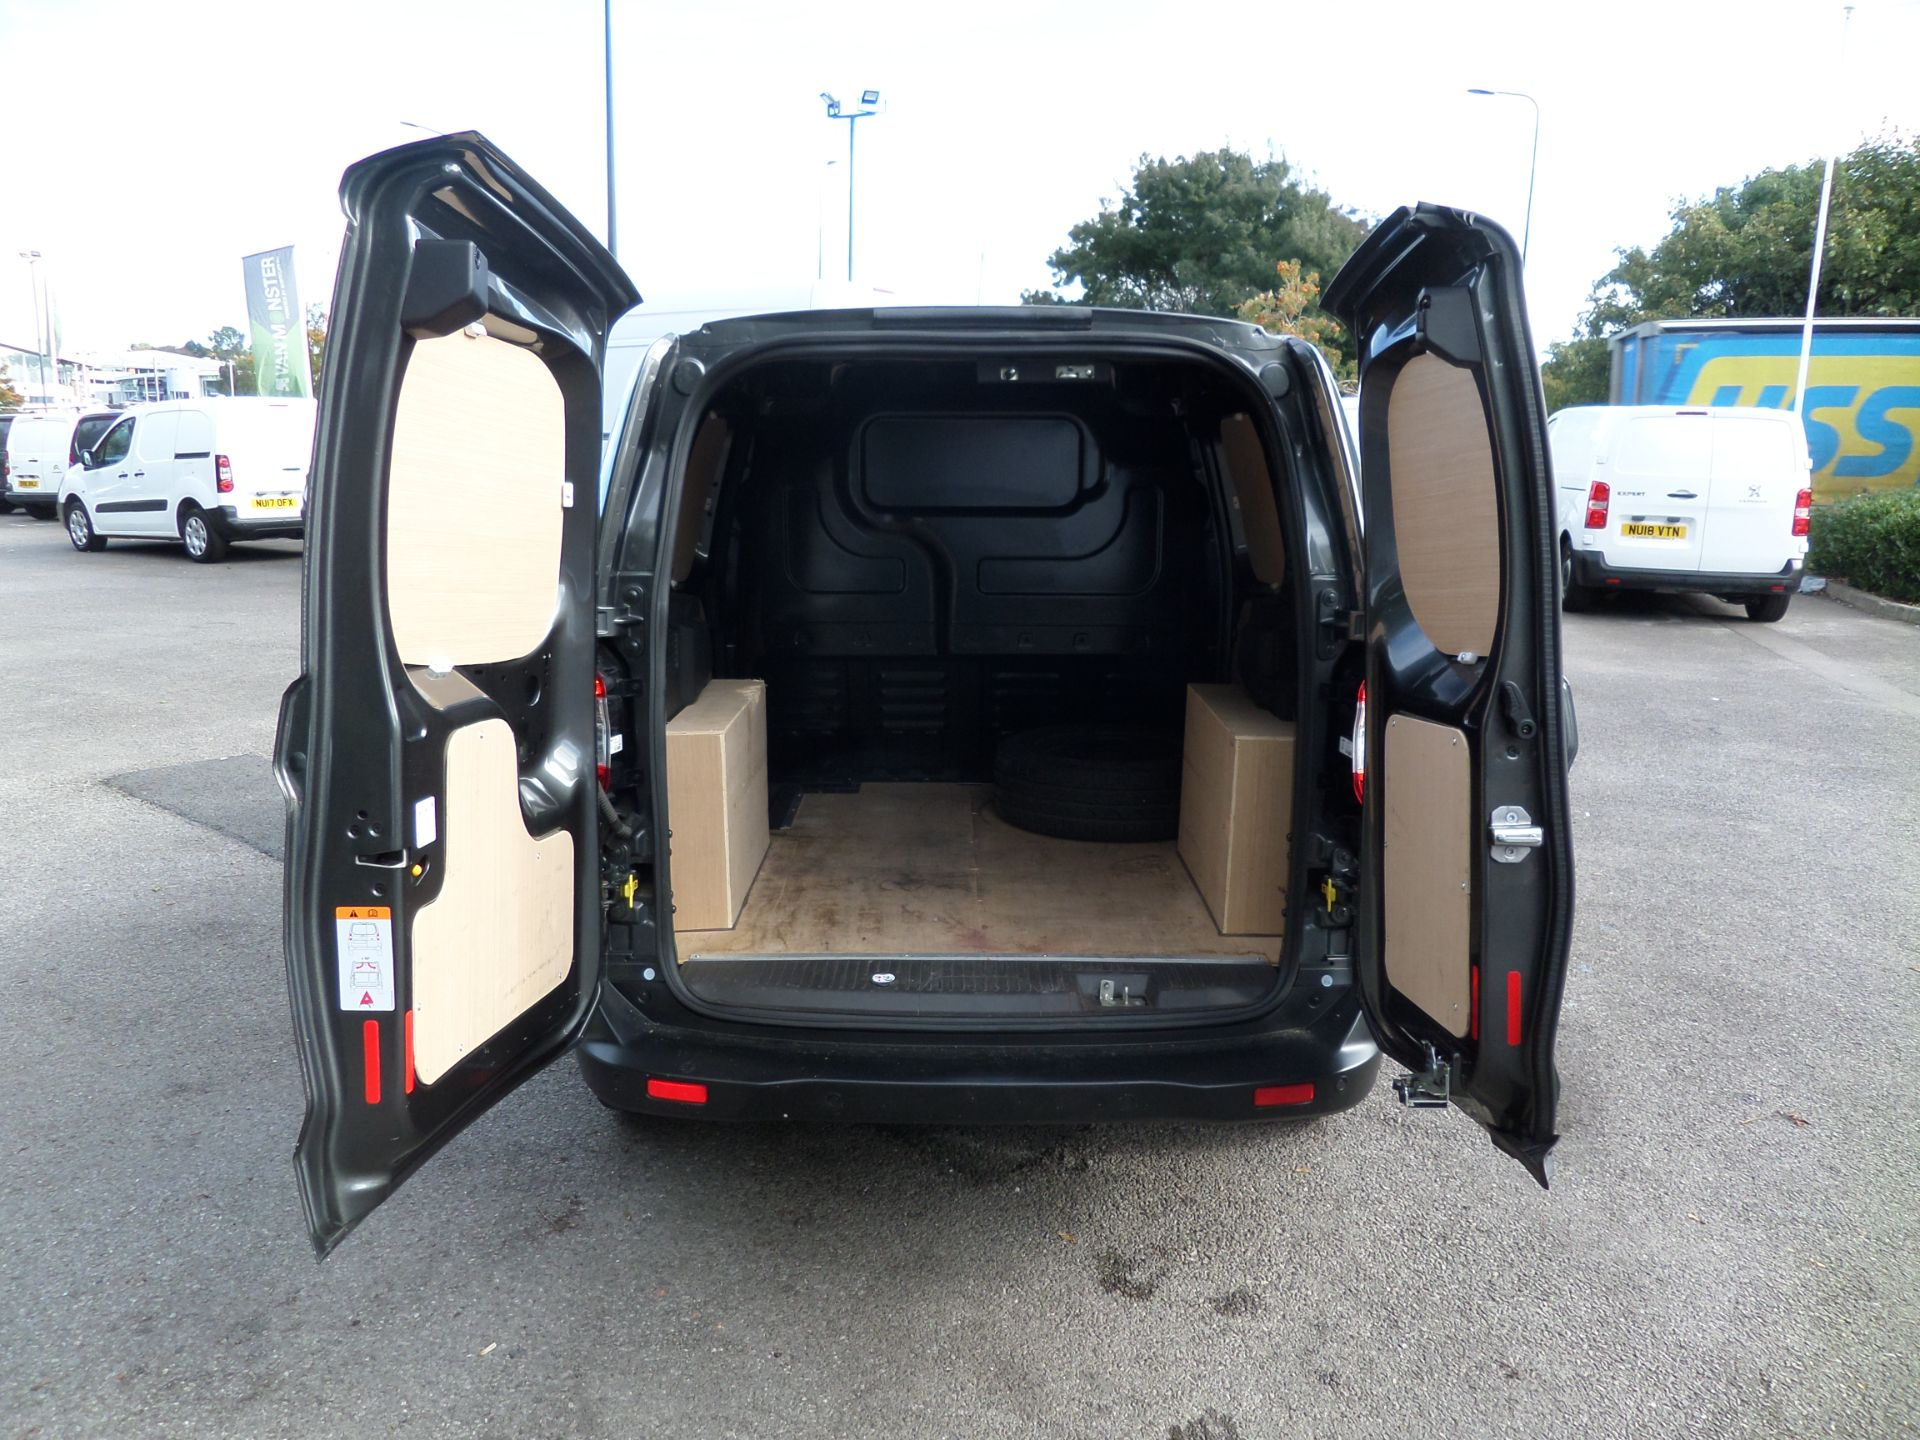 2019 Ford Transit Courier 1.5 Tdci 100Ps Limited Van [6 Speed] Euro 6 (NK19RHU) Image 4